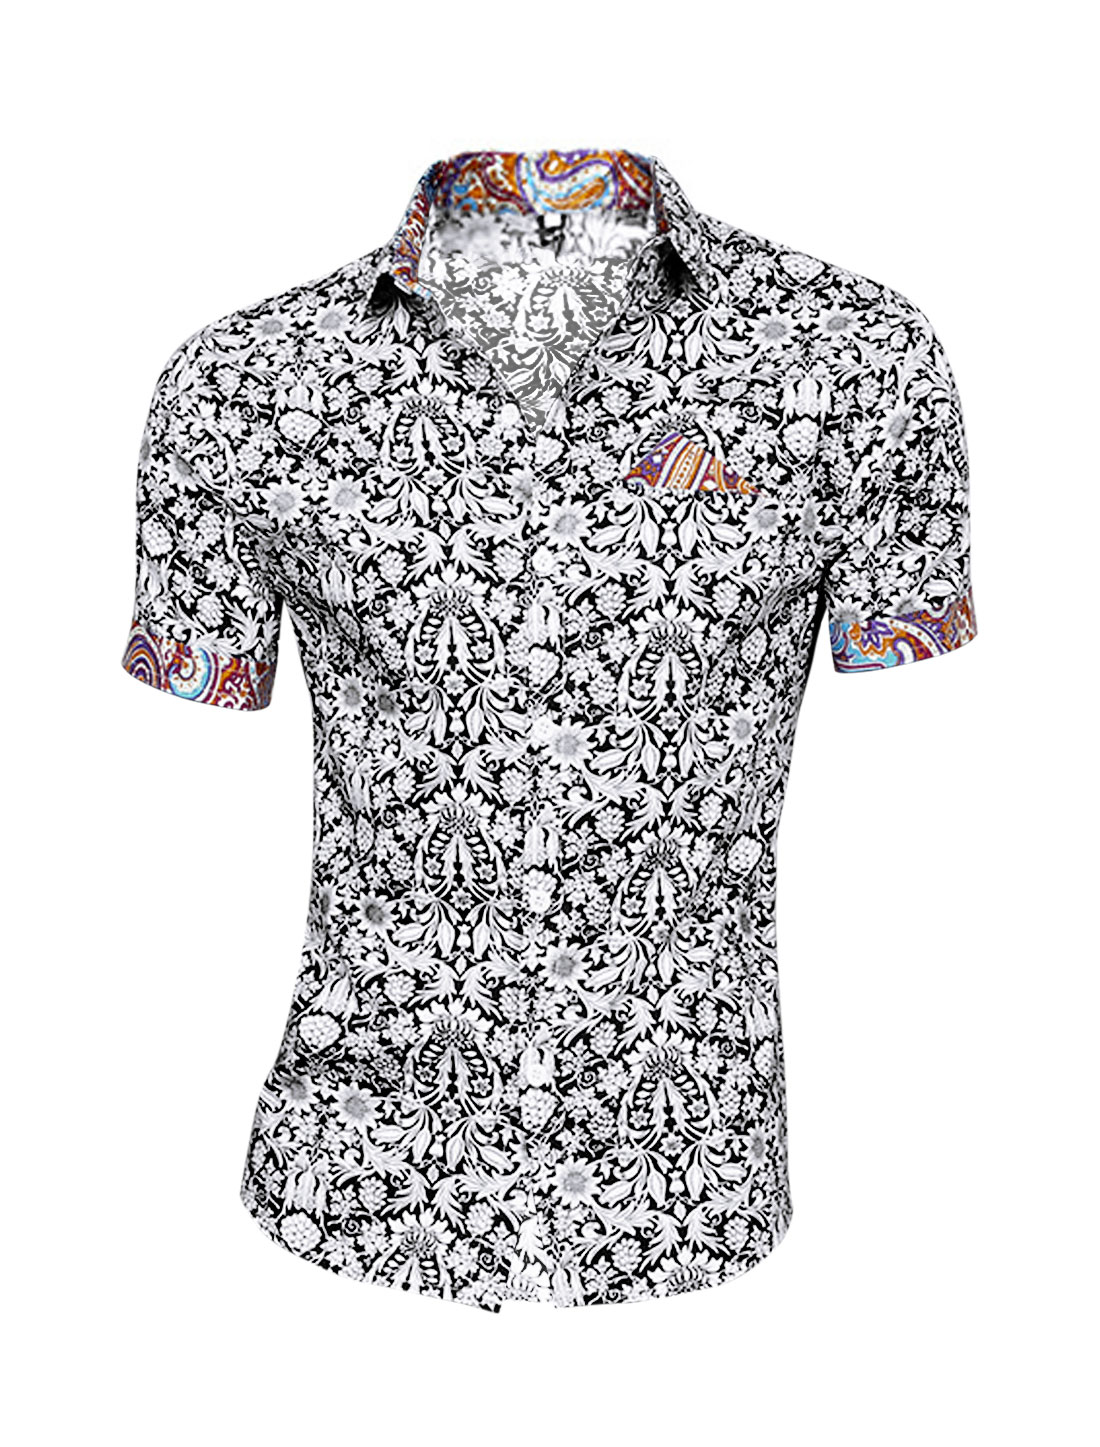 Men Point Collar Floral Prints Fake Welt Pocket Summer Top Shirt Black White M